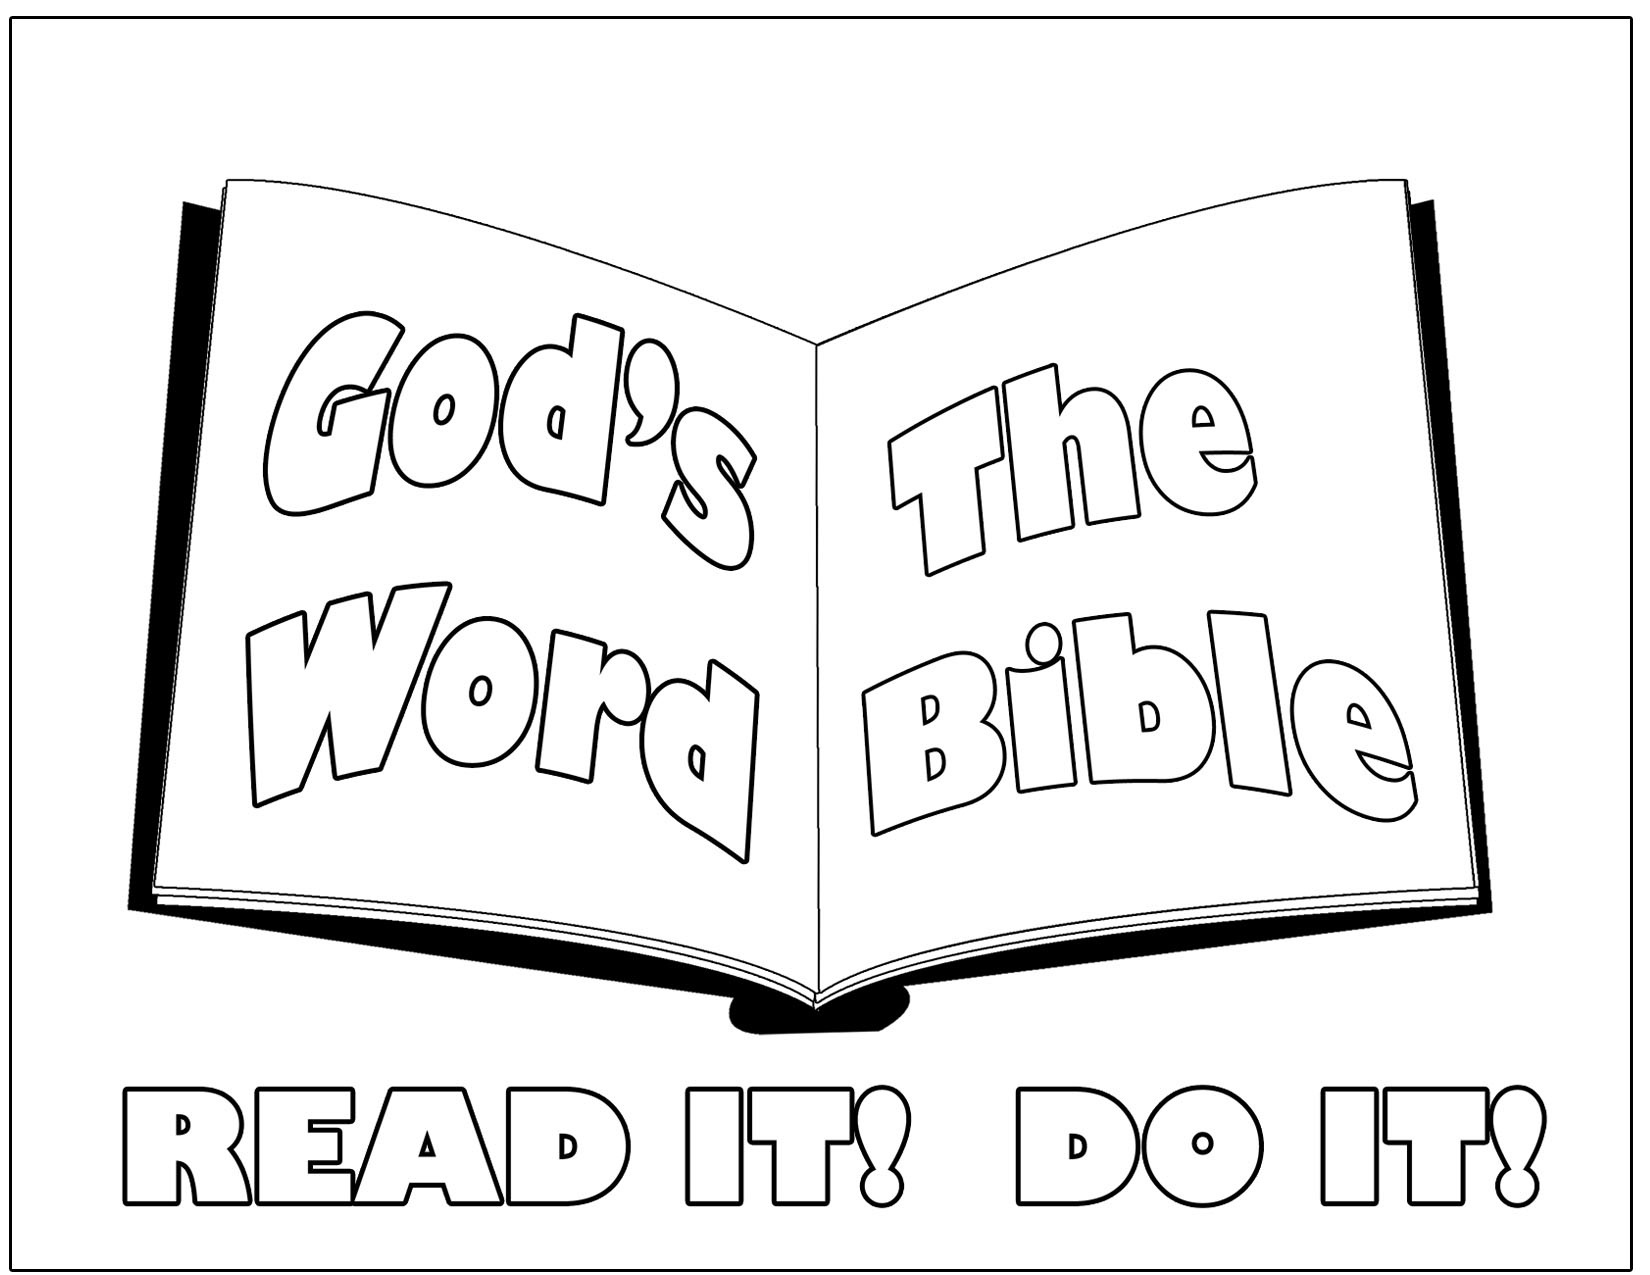 biblical coloring pages coloring now blog archive bible coloring pages 2 pages coloring biblical